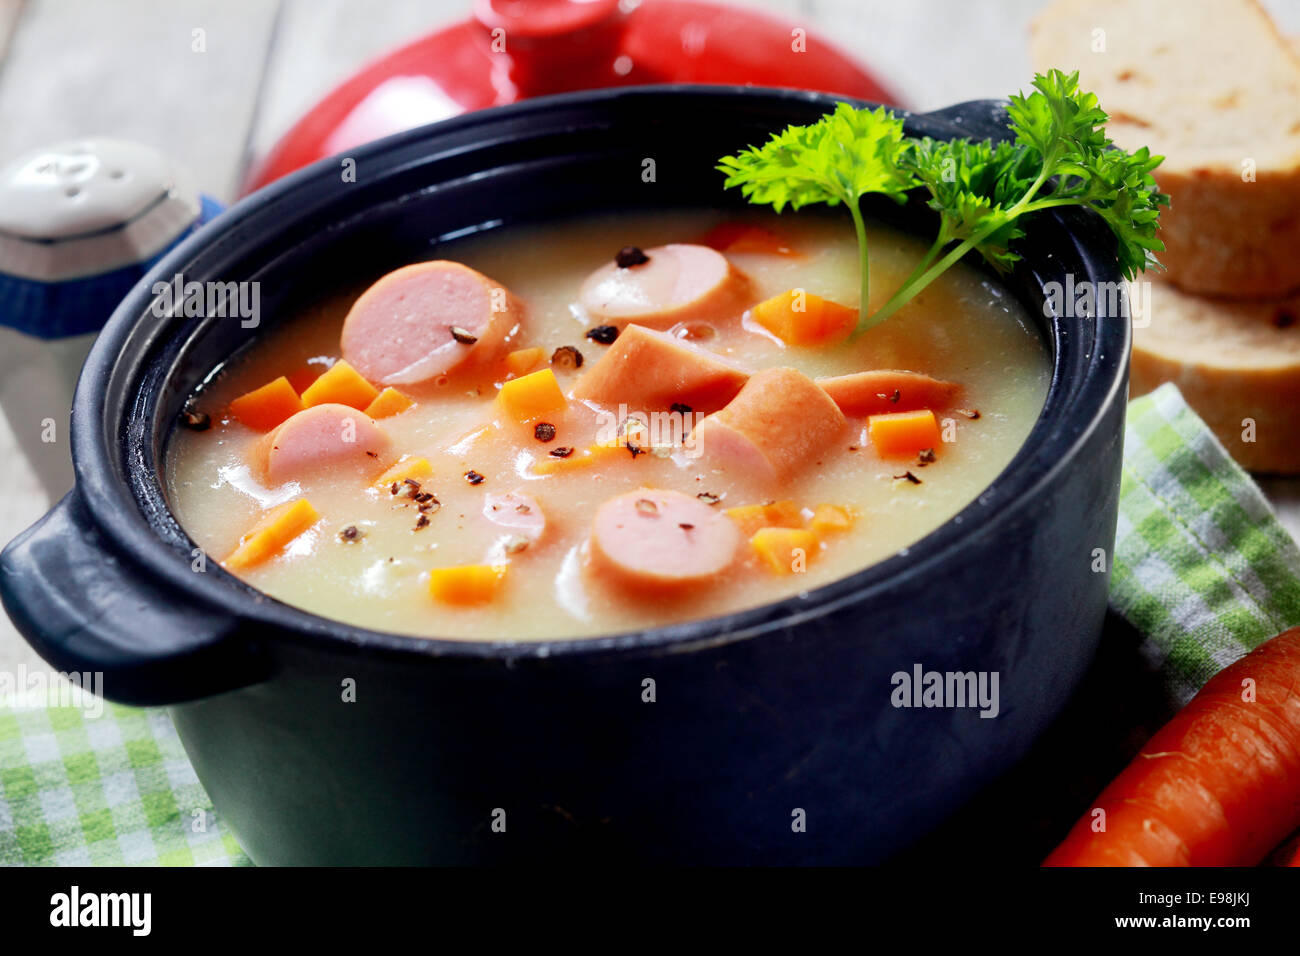 Close up Mouth Watering Hot Creamy Soup Dish with Sausage on Cloth at Wooden Table. - Stock Image